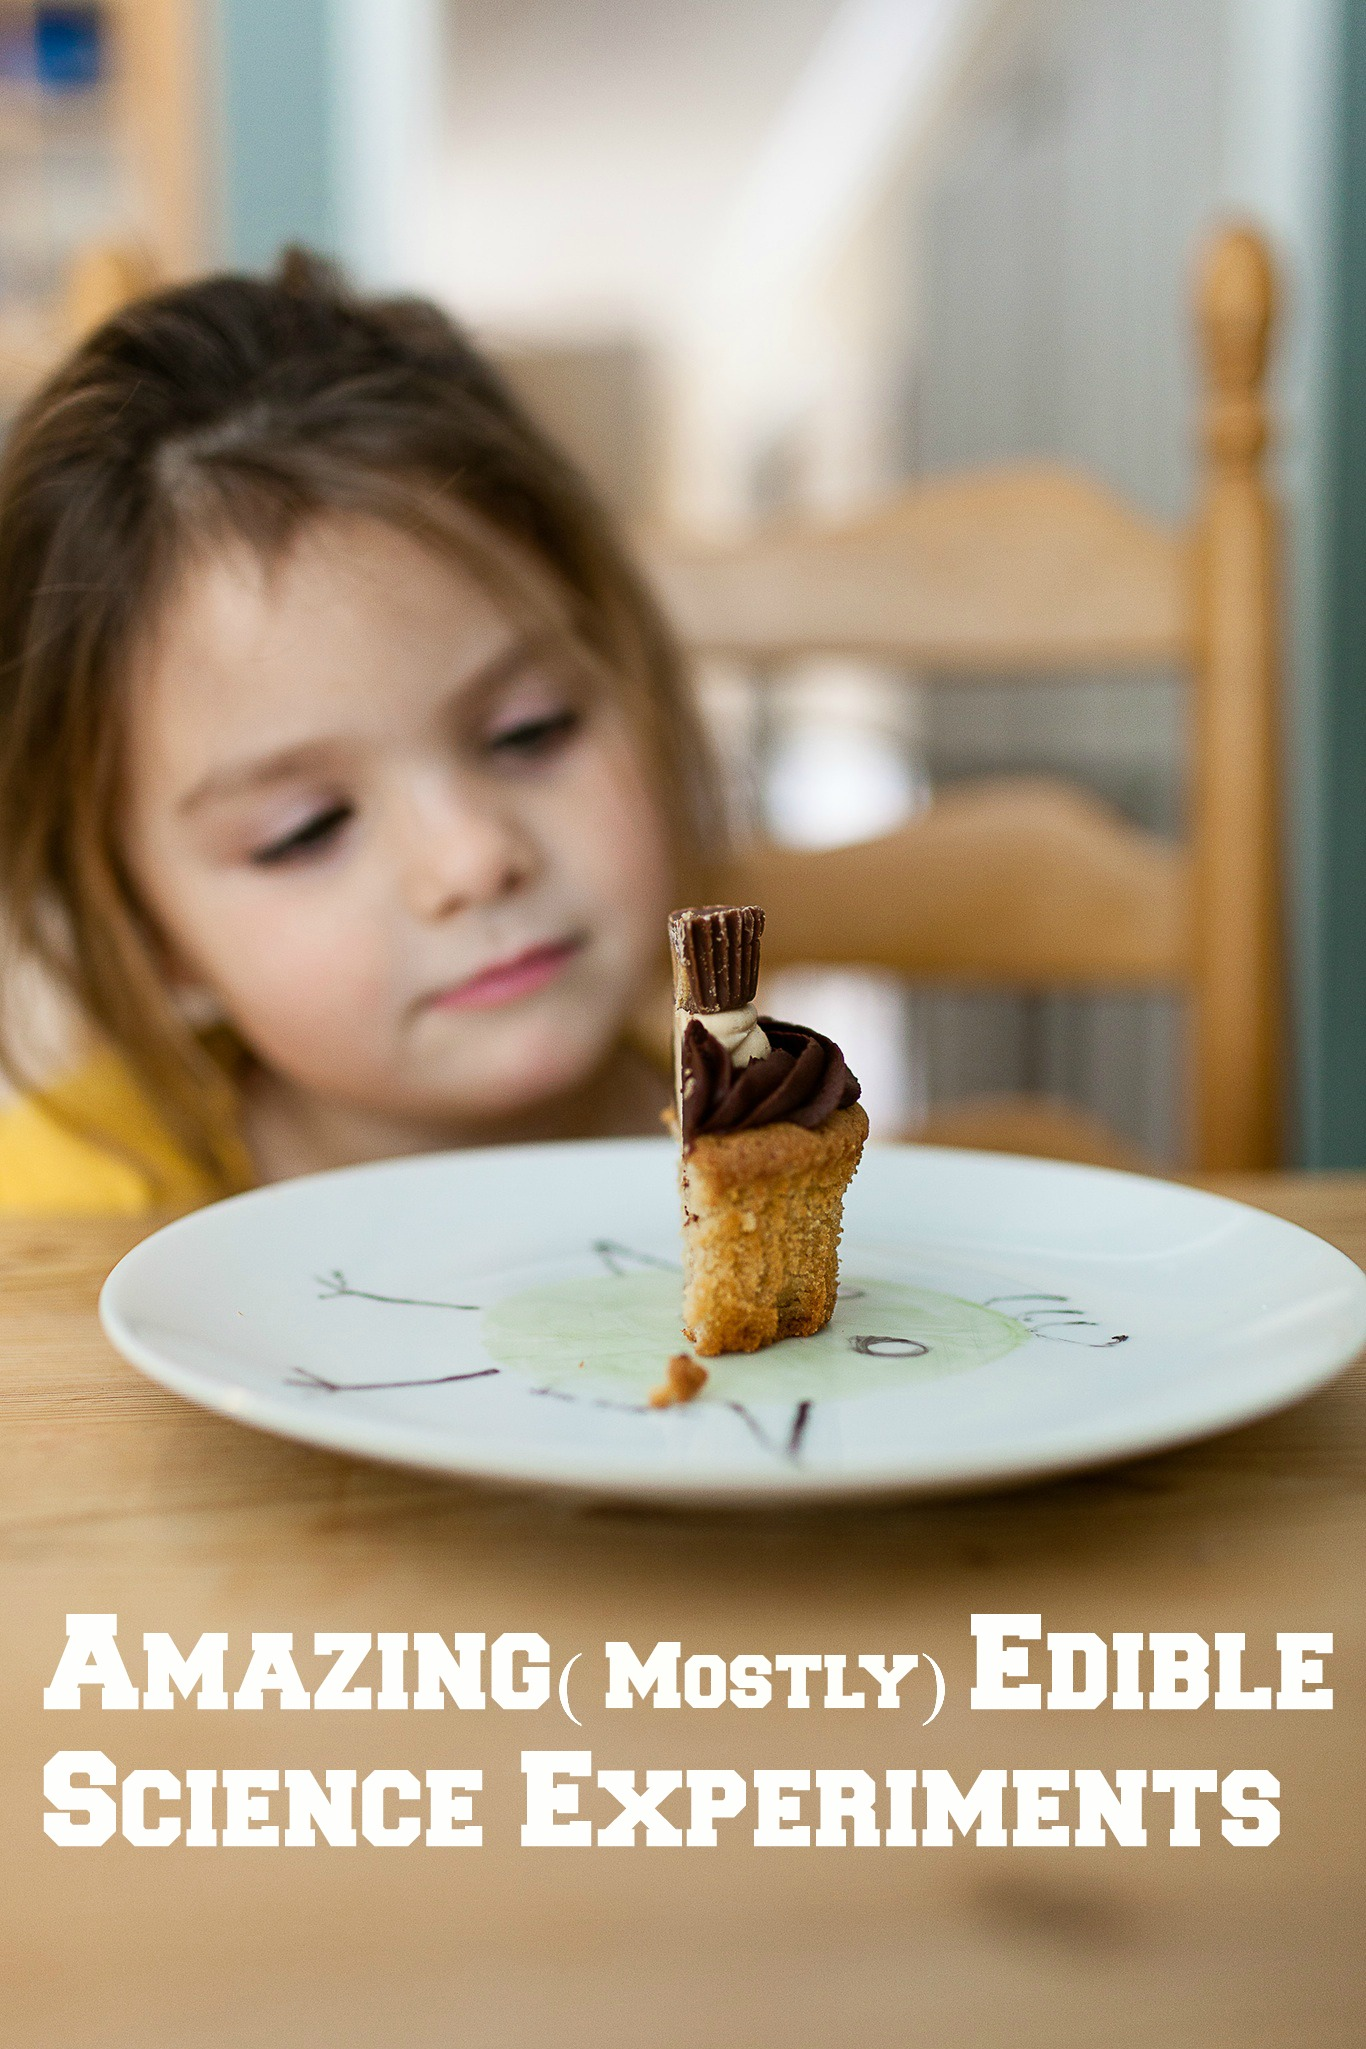 Keep Kids Smart and Satisfied This Summer with Amazing (Mostly) Edible Science Experiments